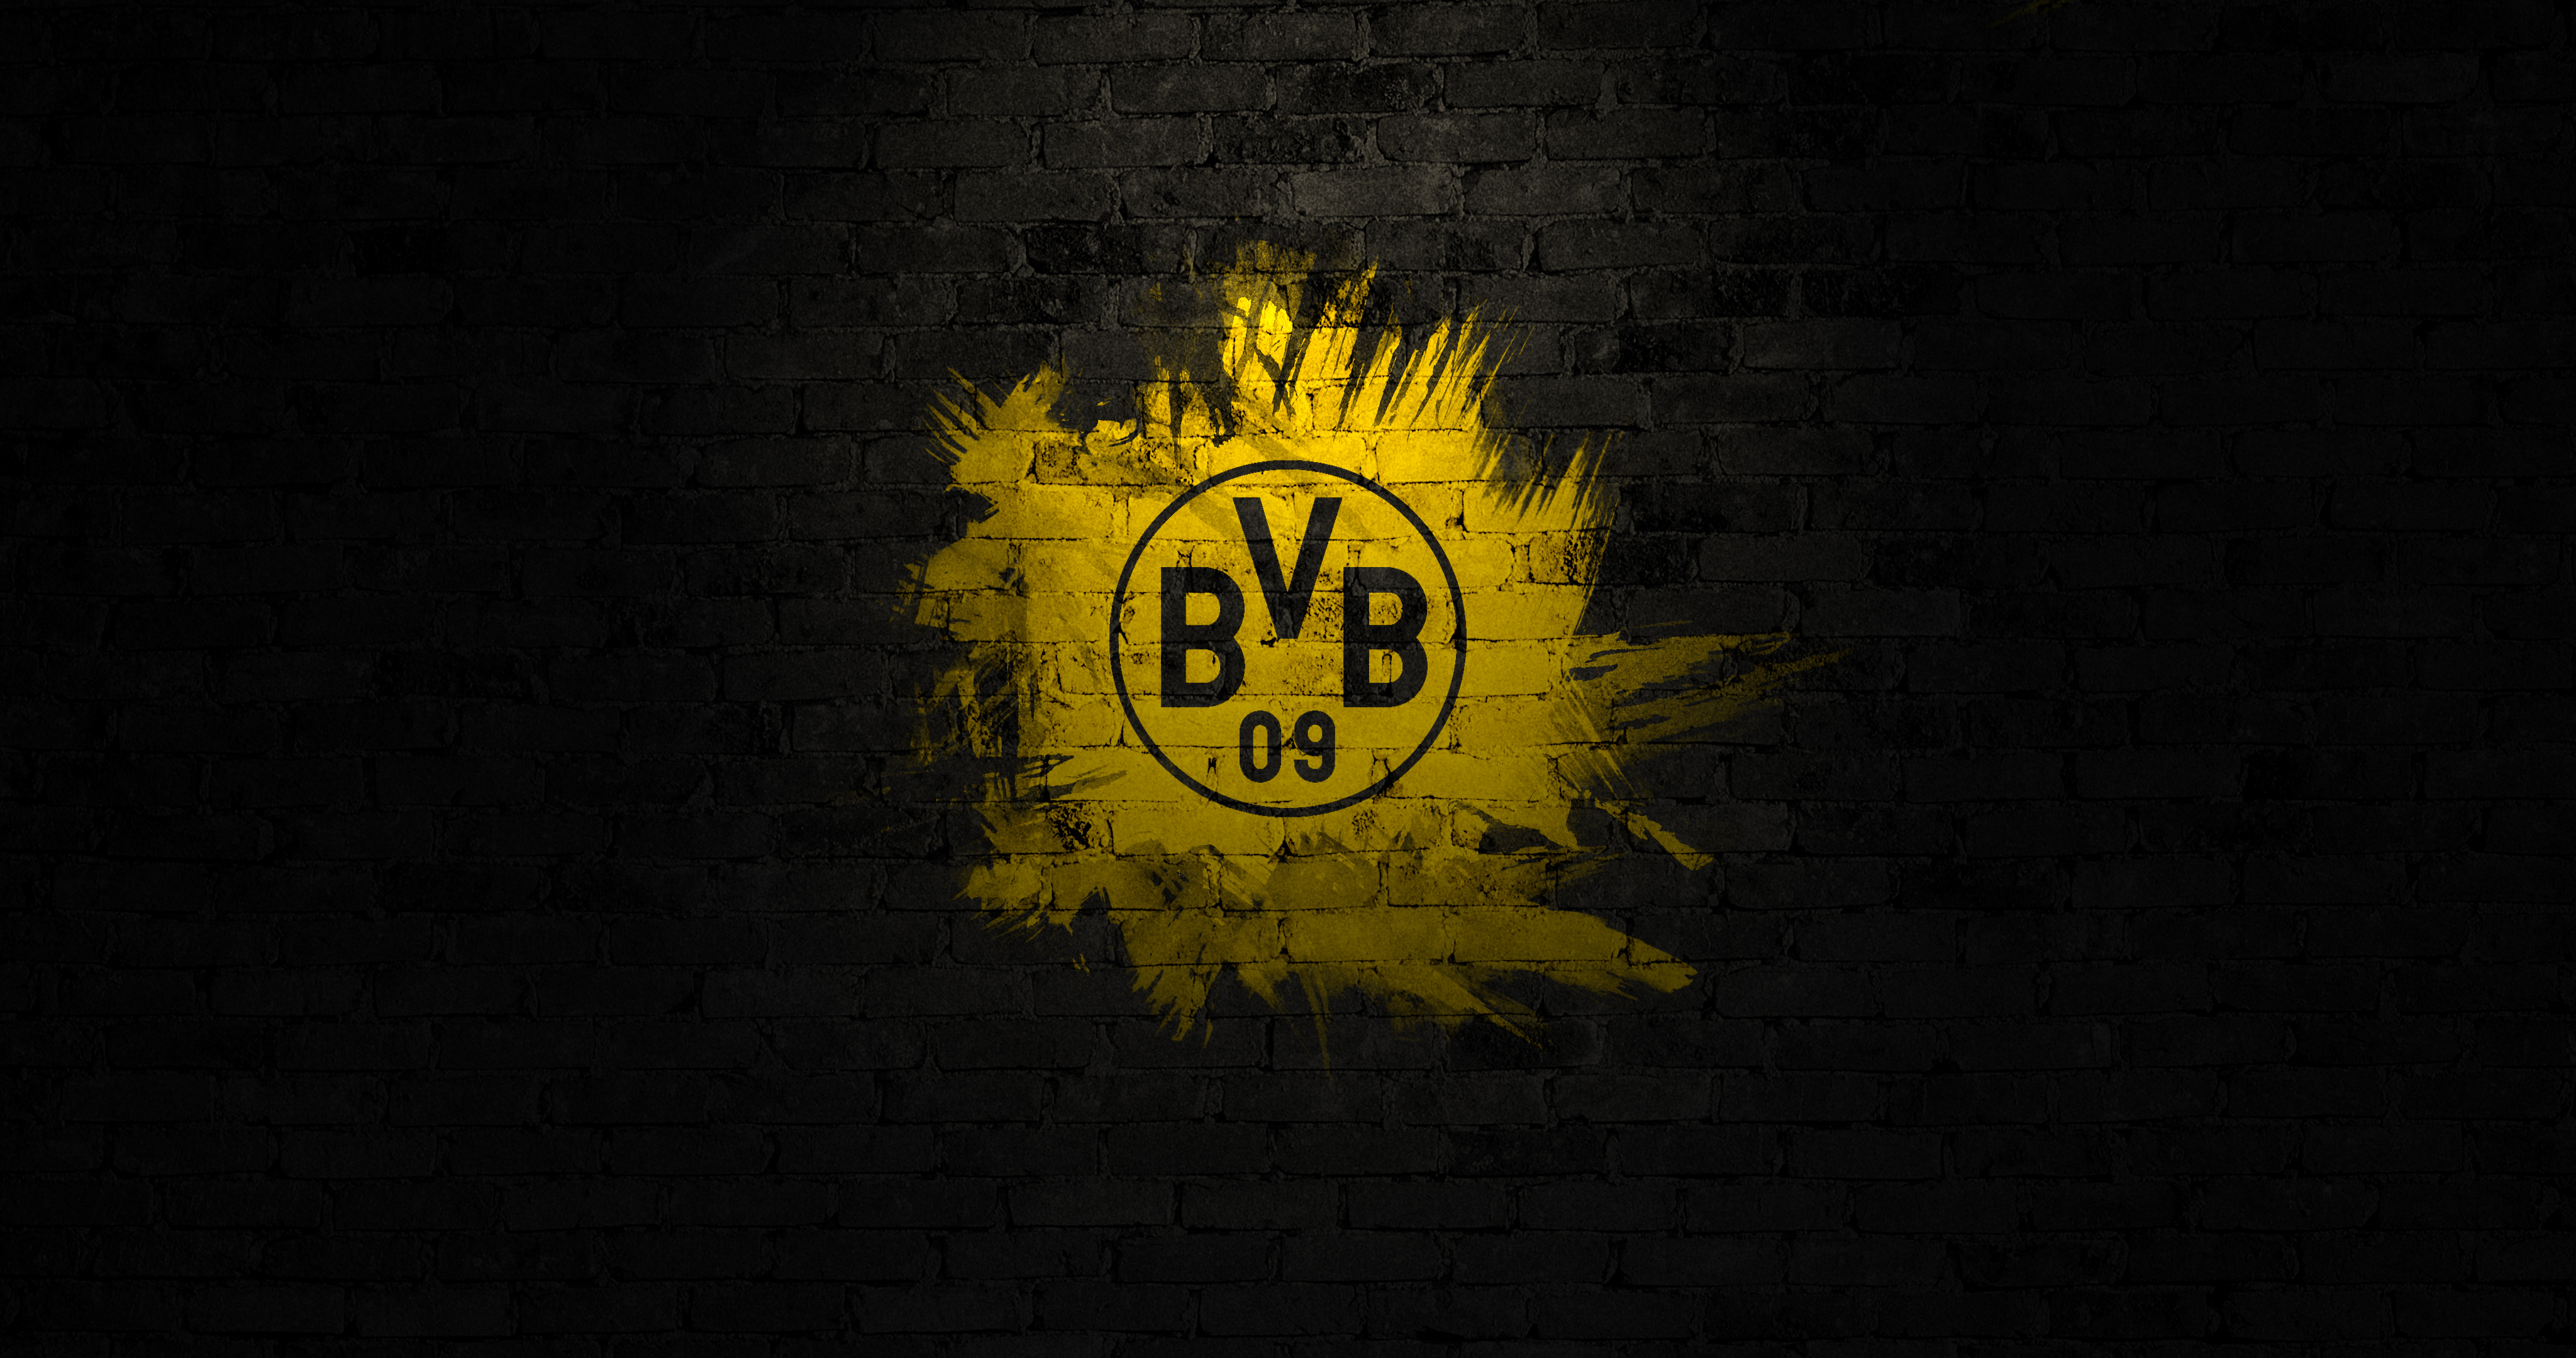 bvb logo wallpaper 4k by geryd on deviantart